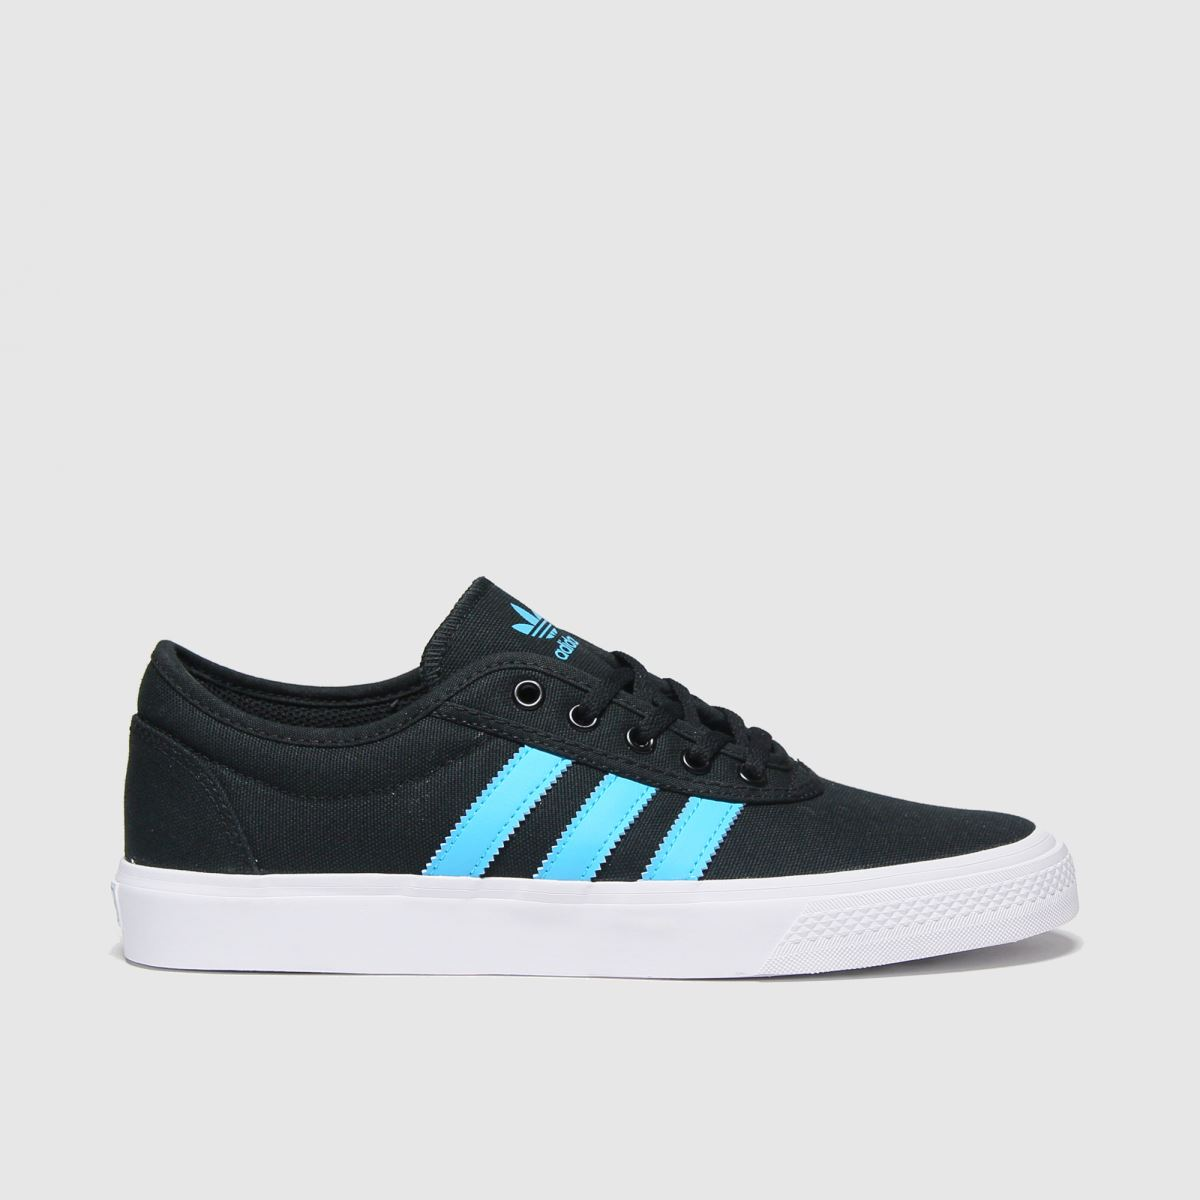 Adidas Black And Blue Adi-ease Trainers